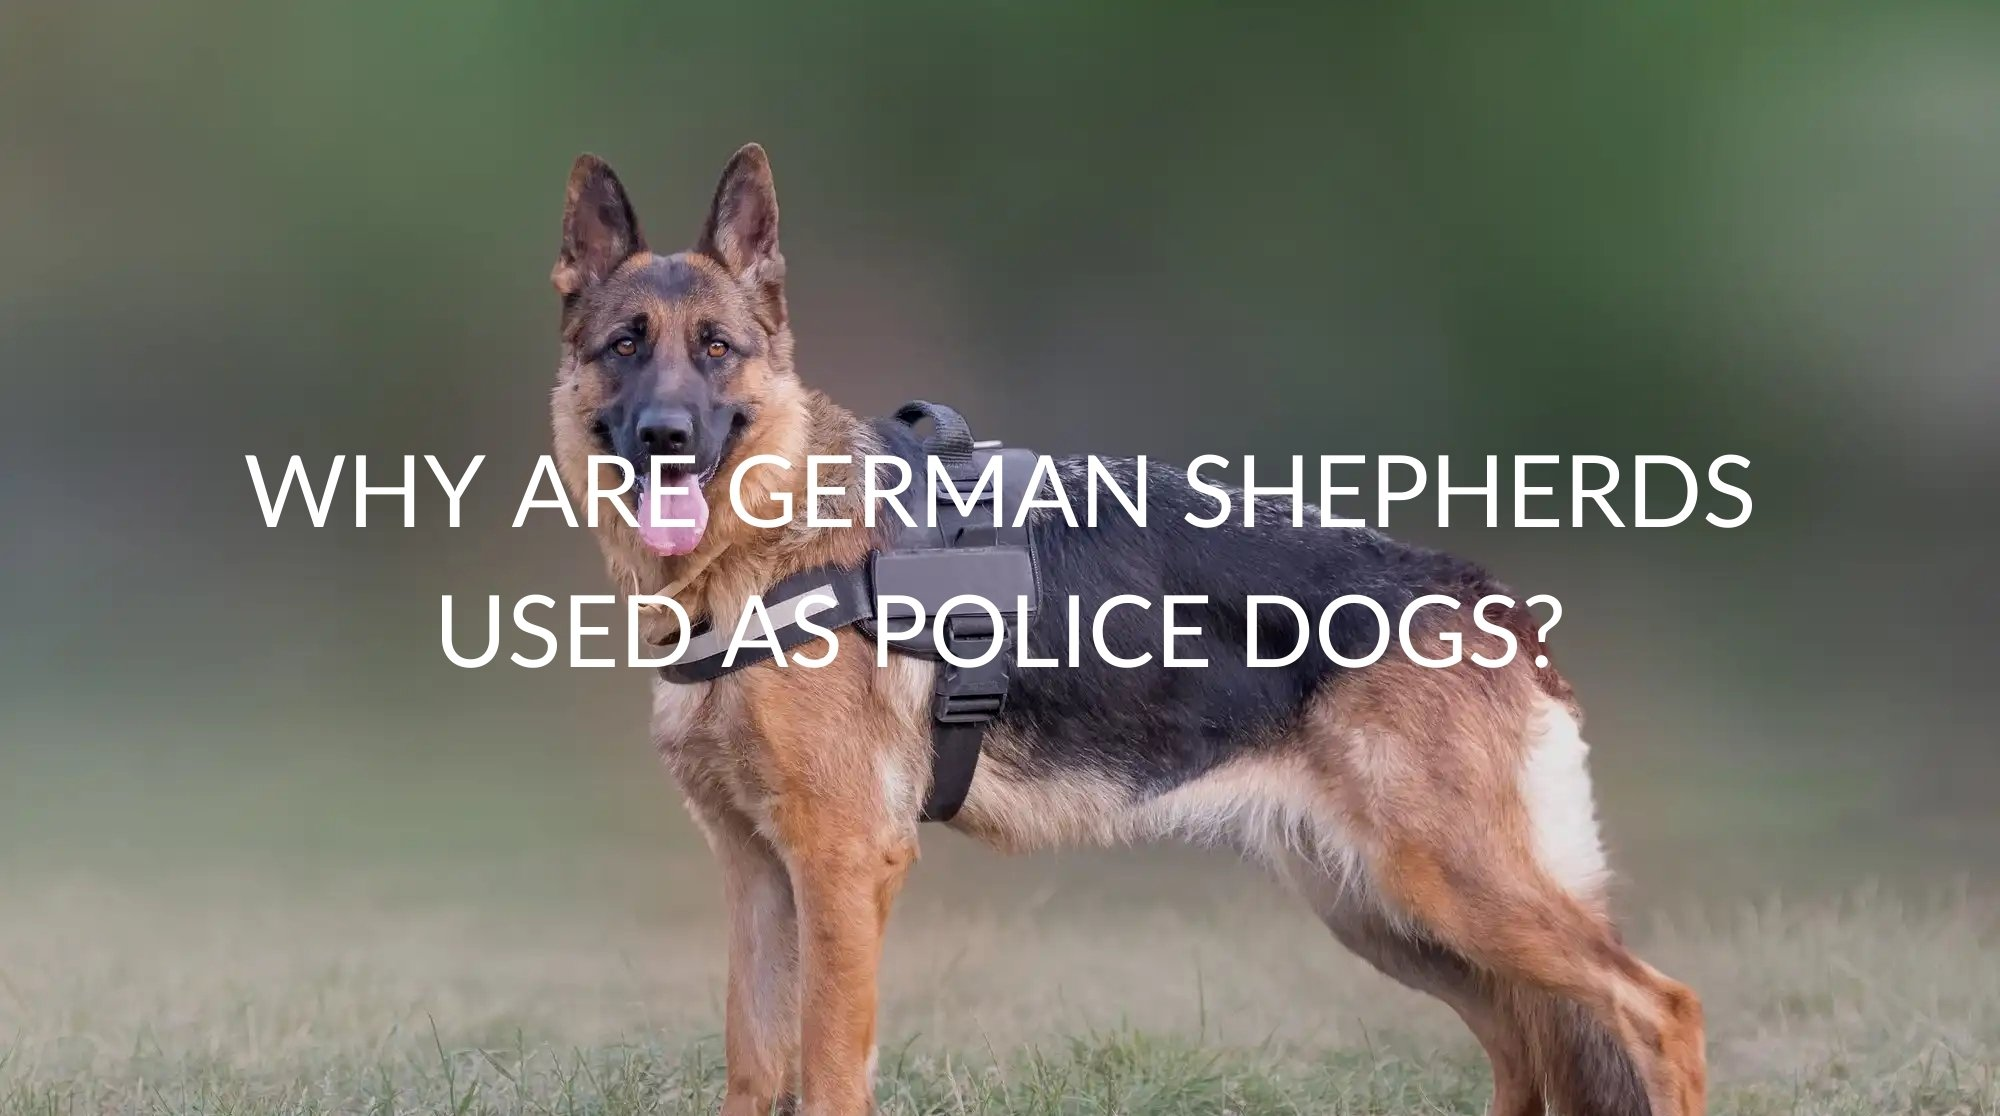 Why Are German Shepherds Used as Police Dogs?